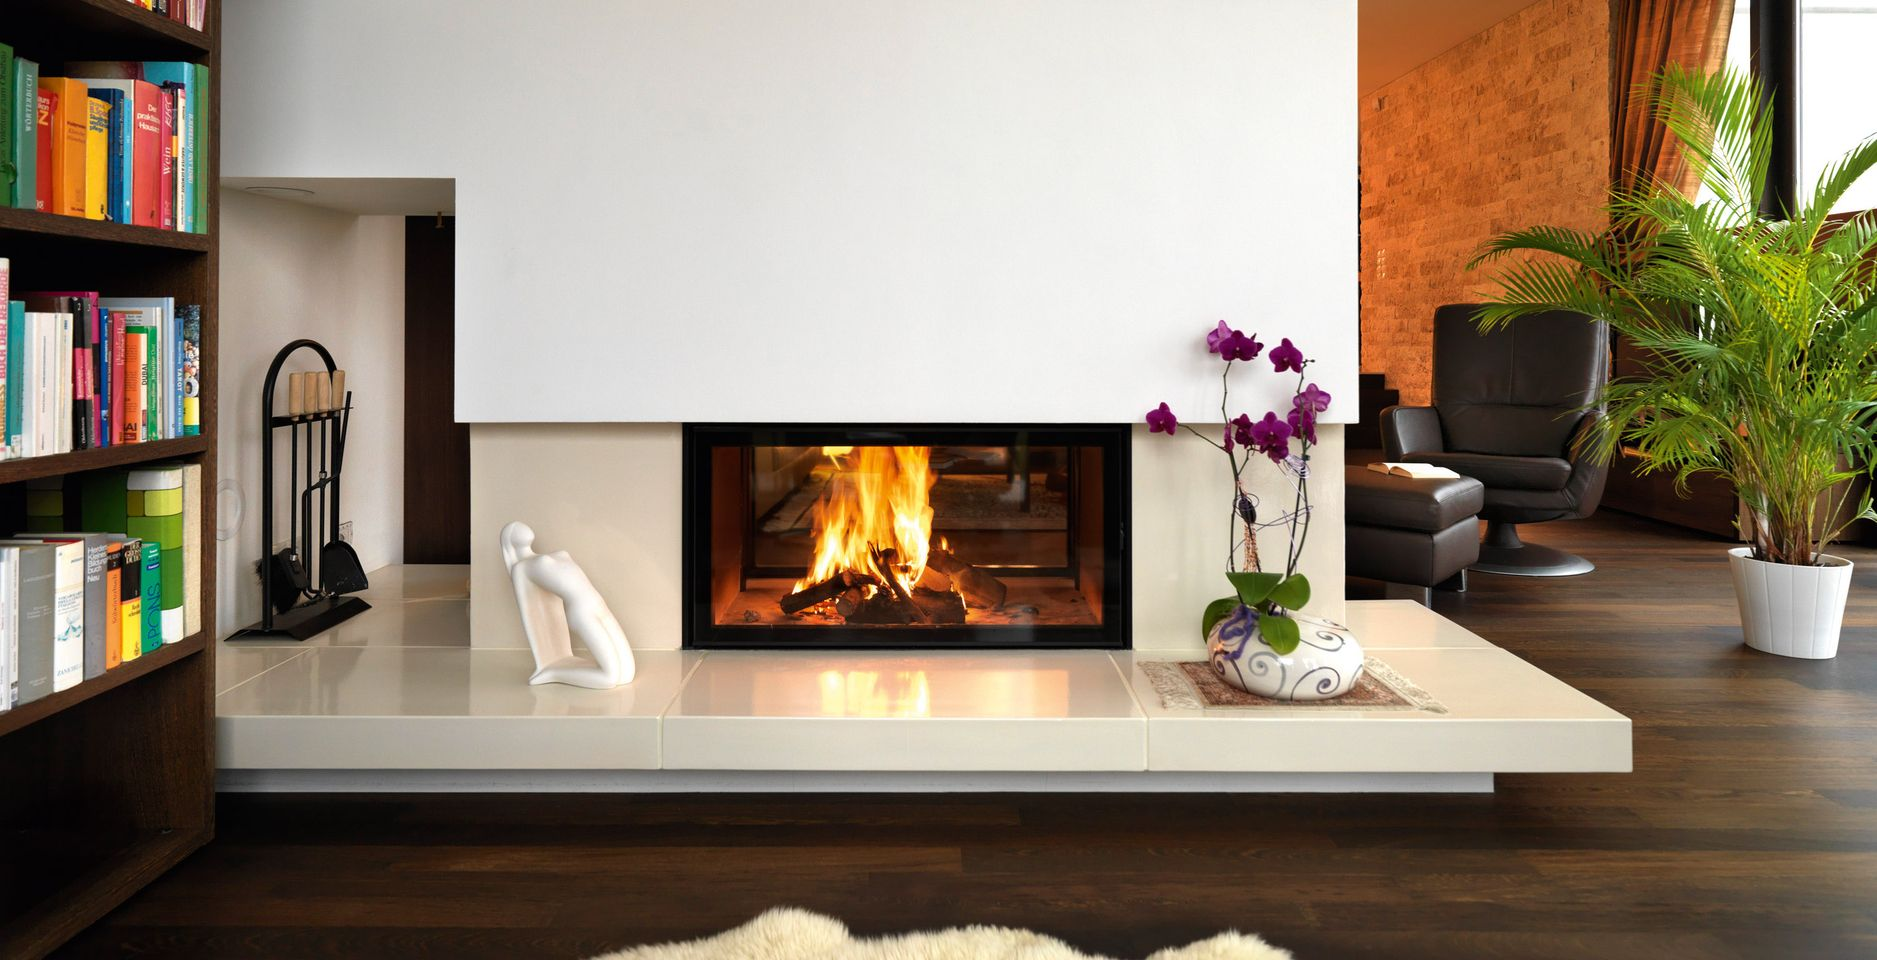 Fireplace Inserts Heating Inserts In A Variety Of Models Fireplace Gas Fireplace Wood Fireplace